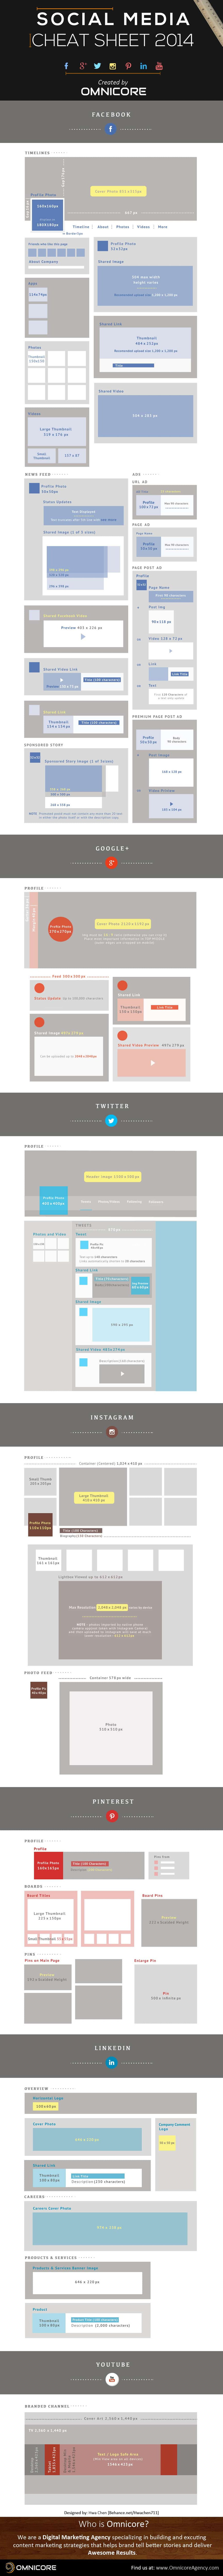 Social Media Design Cheat Sheet 2014 (Infographic)